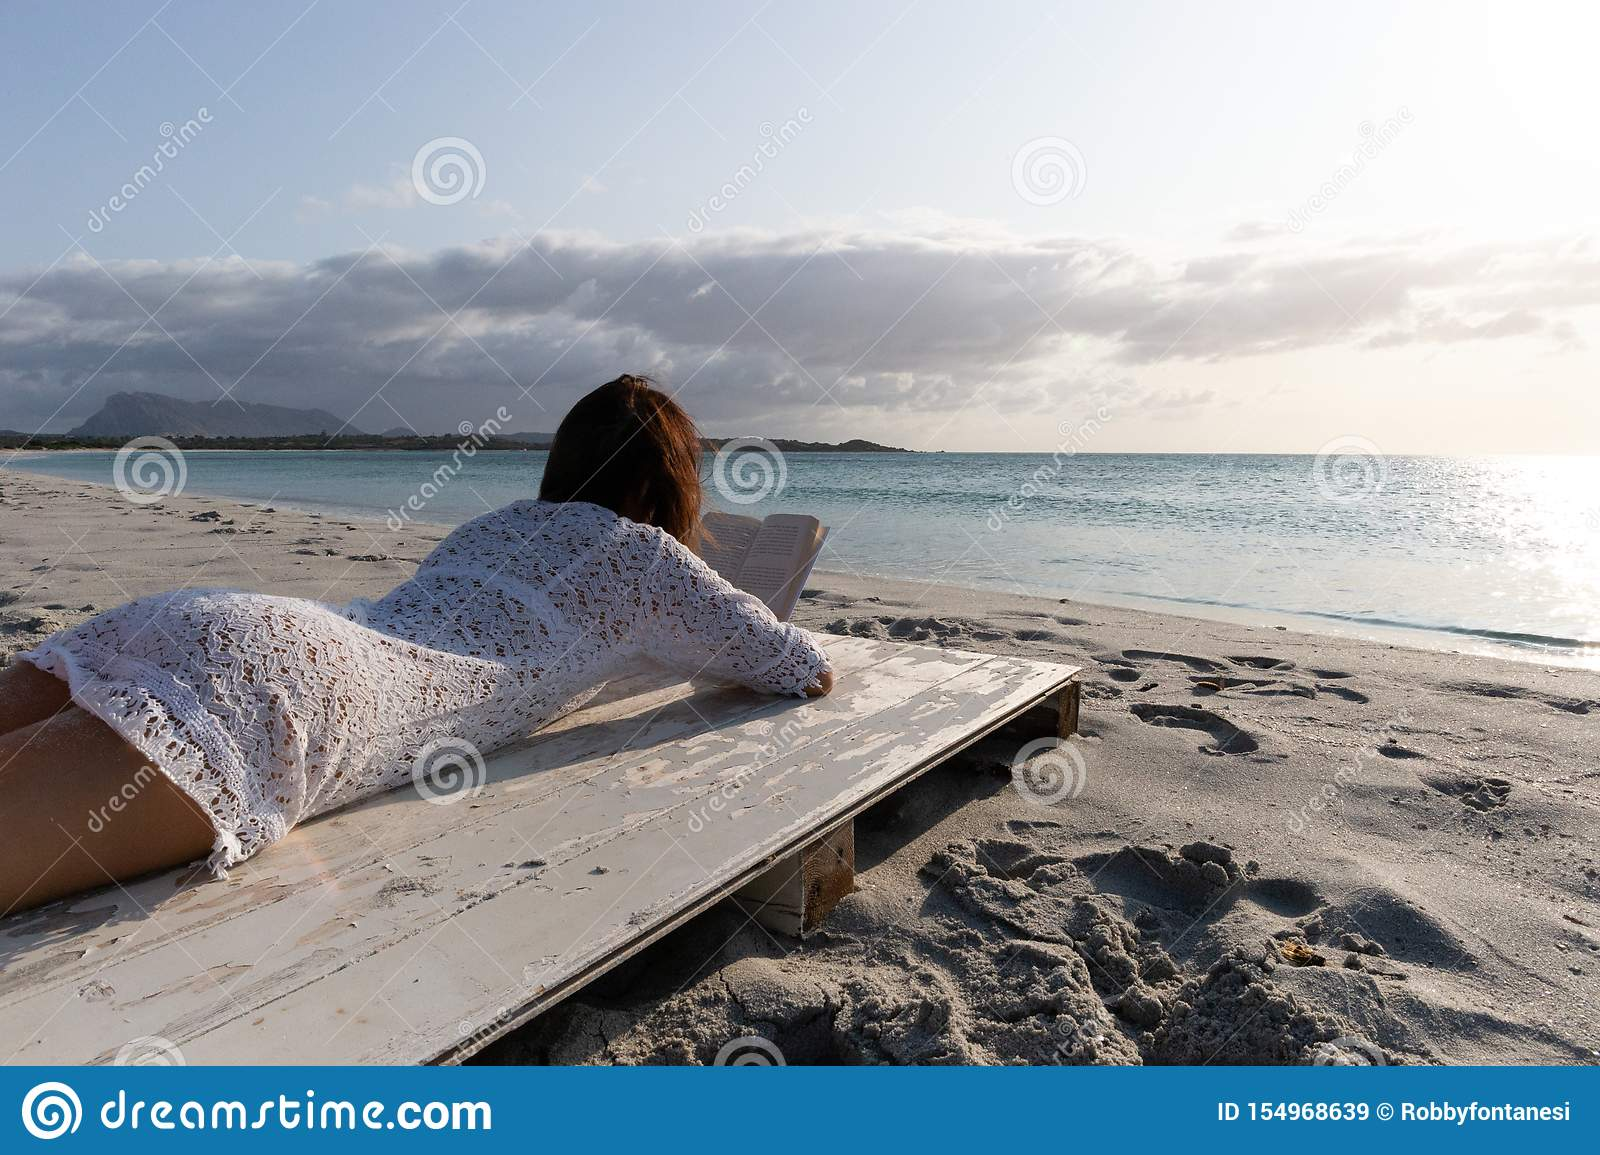 Budoni, Italy - July 20 2019: young woman lying by the sea looks at the horizon at dawn in the wind dressed in a white lace dress